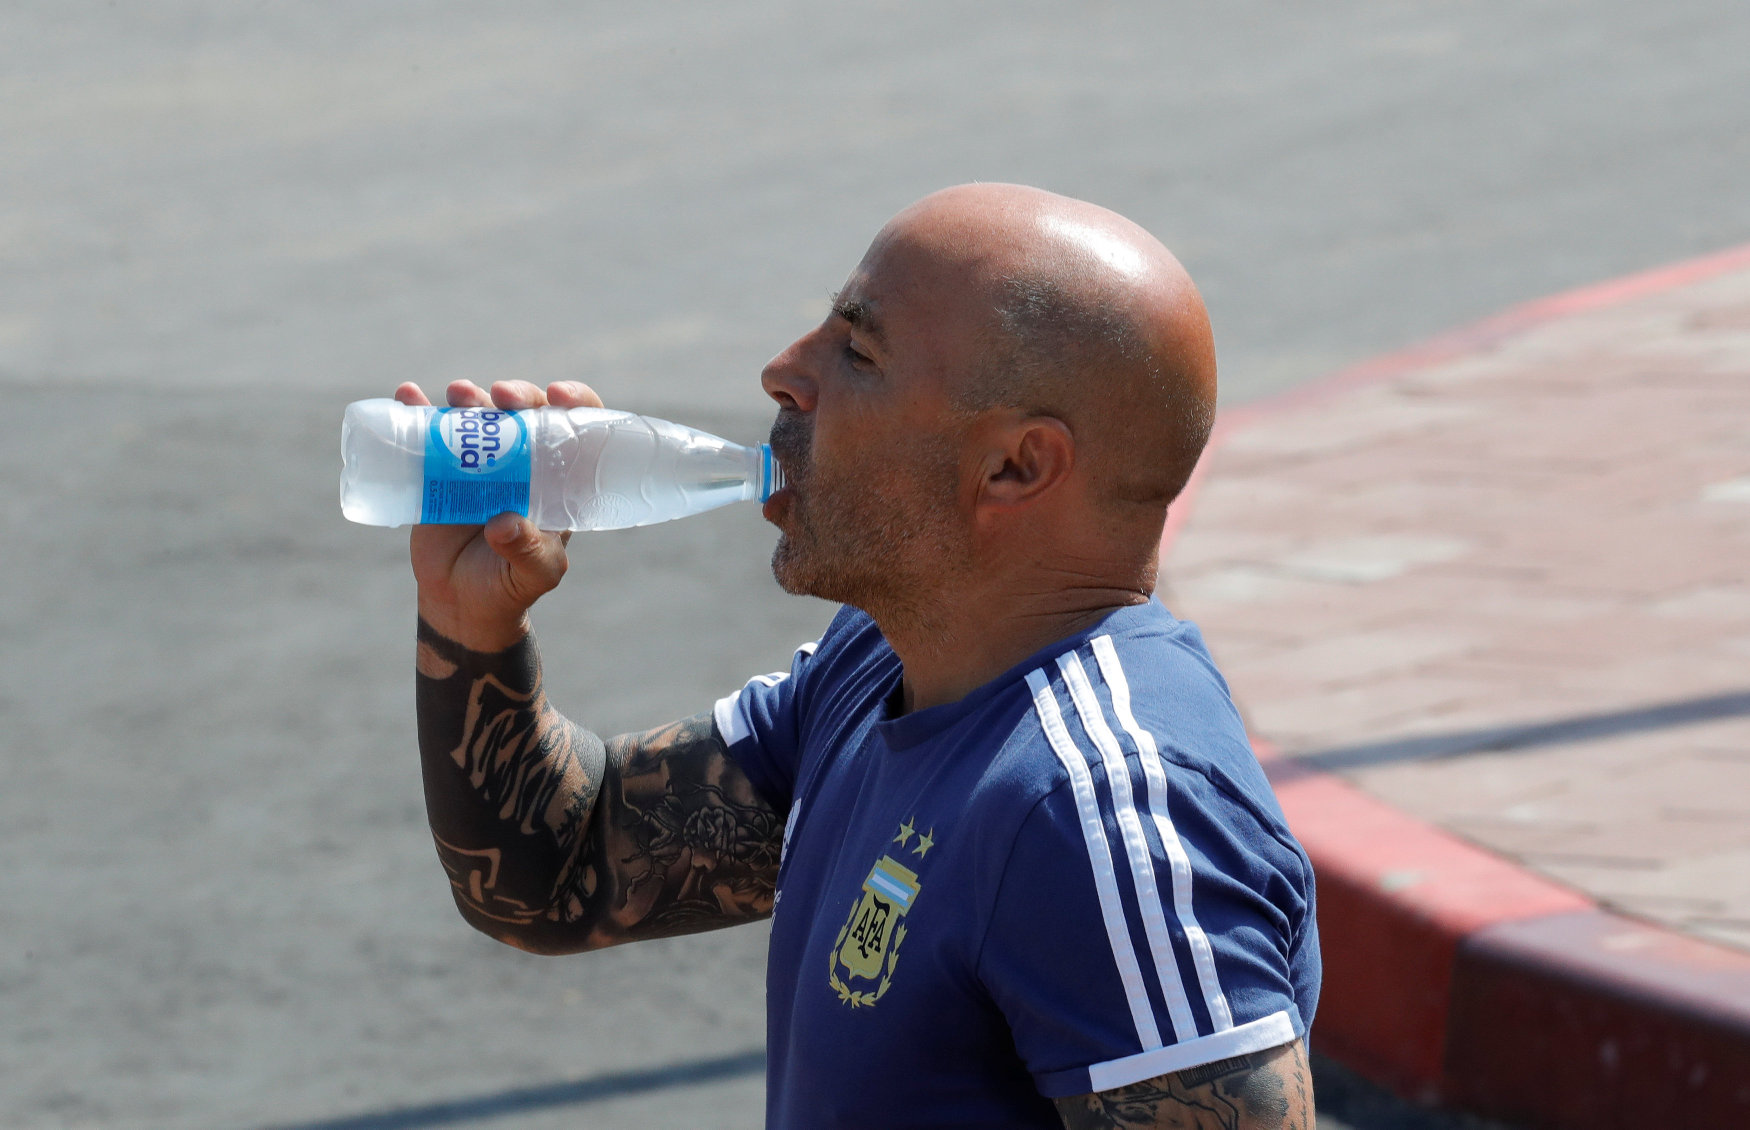 2018-06-23T093545Z_45272812_RC19940A85A0_RTRMADP_3_SOCCER-WORLDCUP-ARG